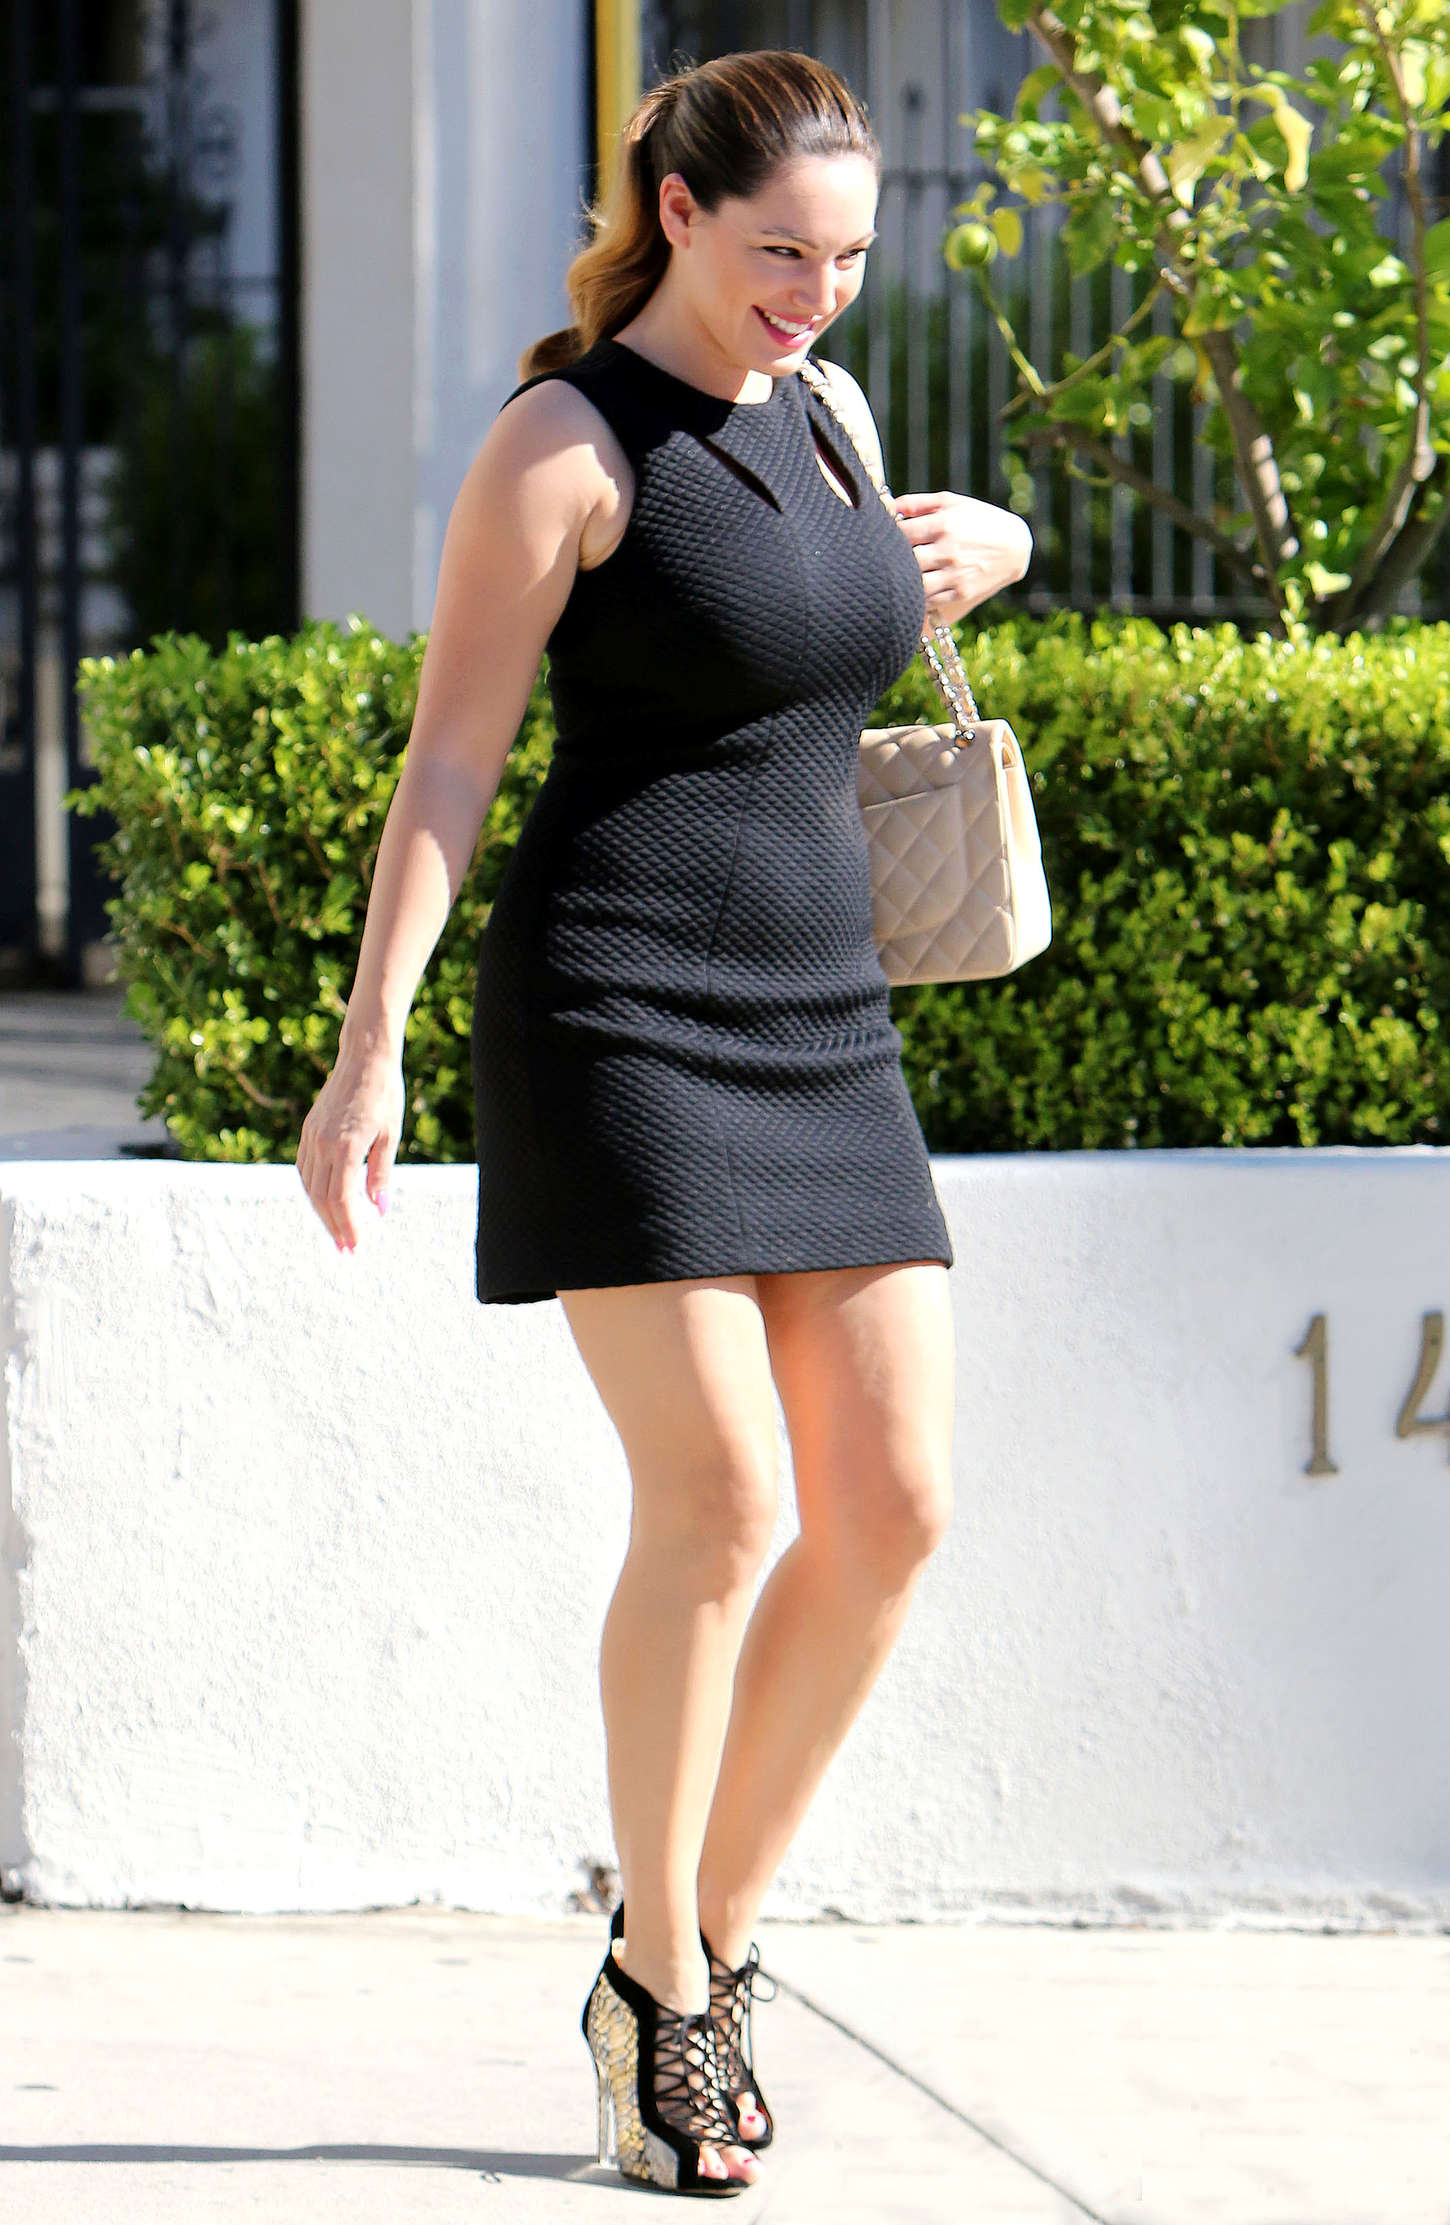 Kelly Brook in Tight Black Dress out Shopping in LA